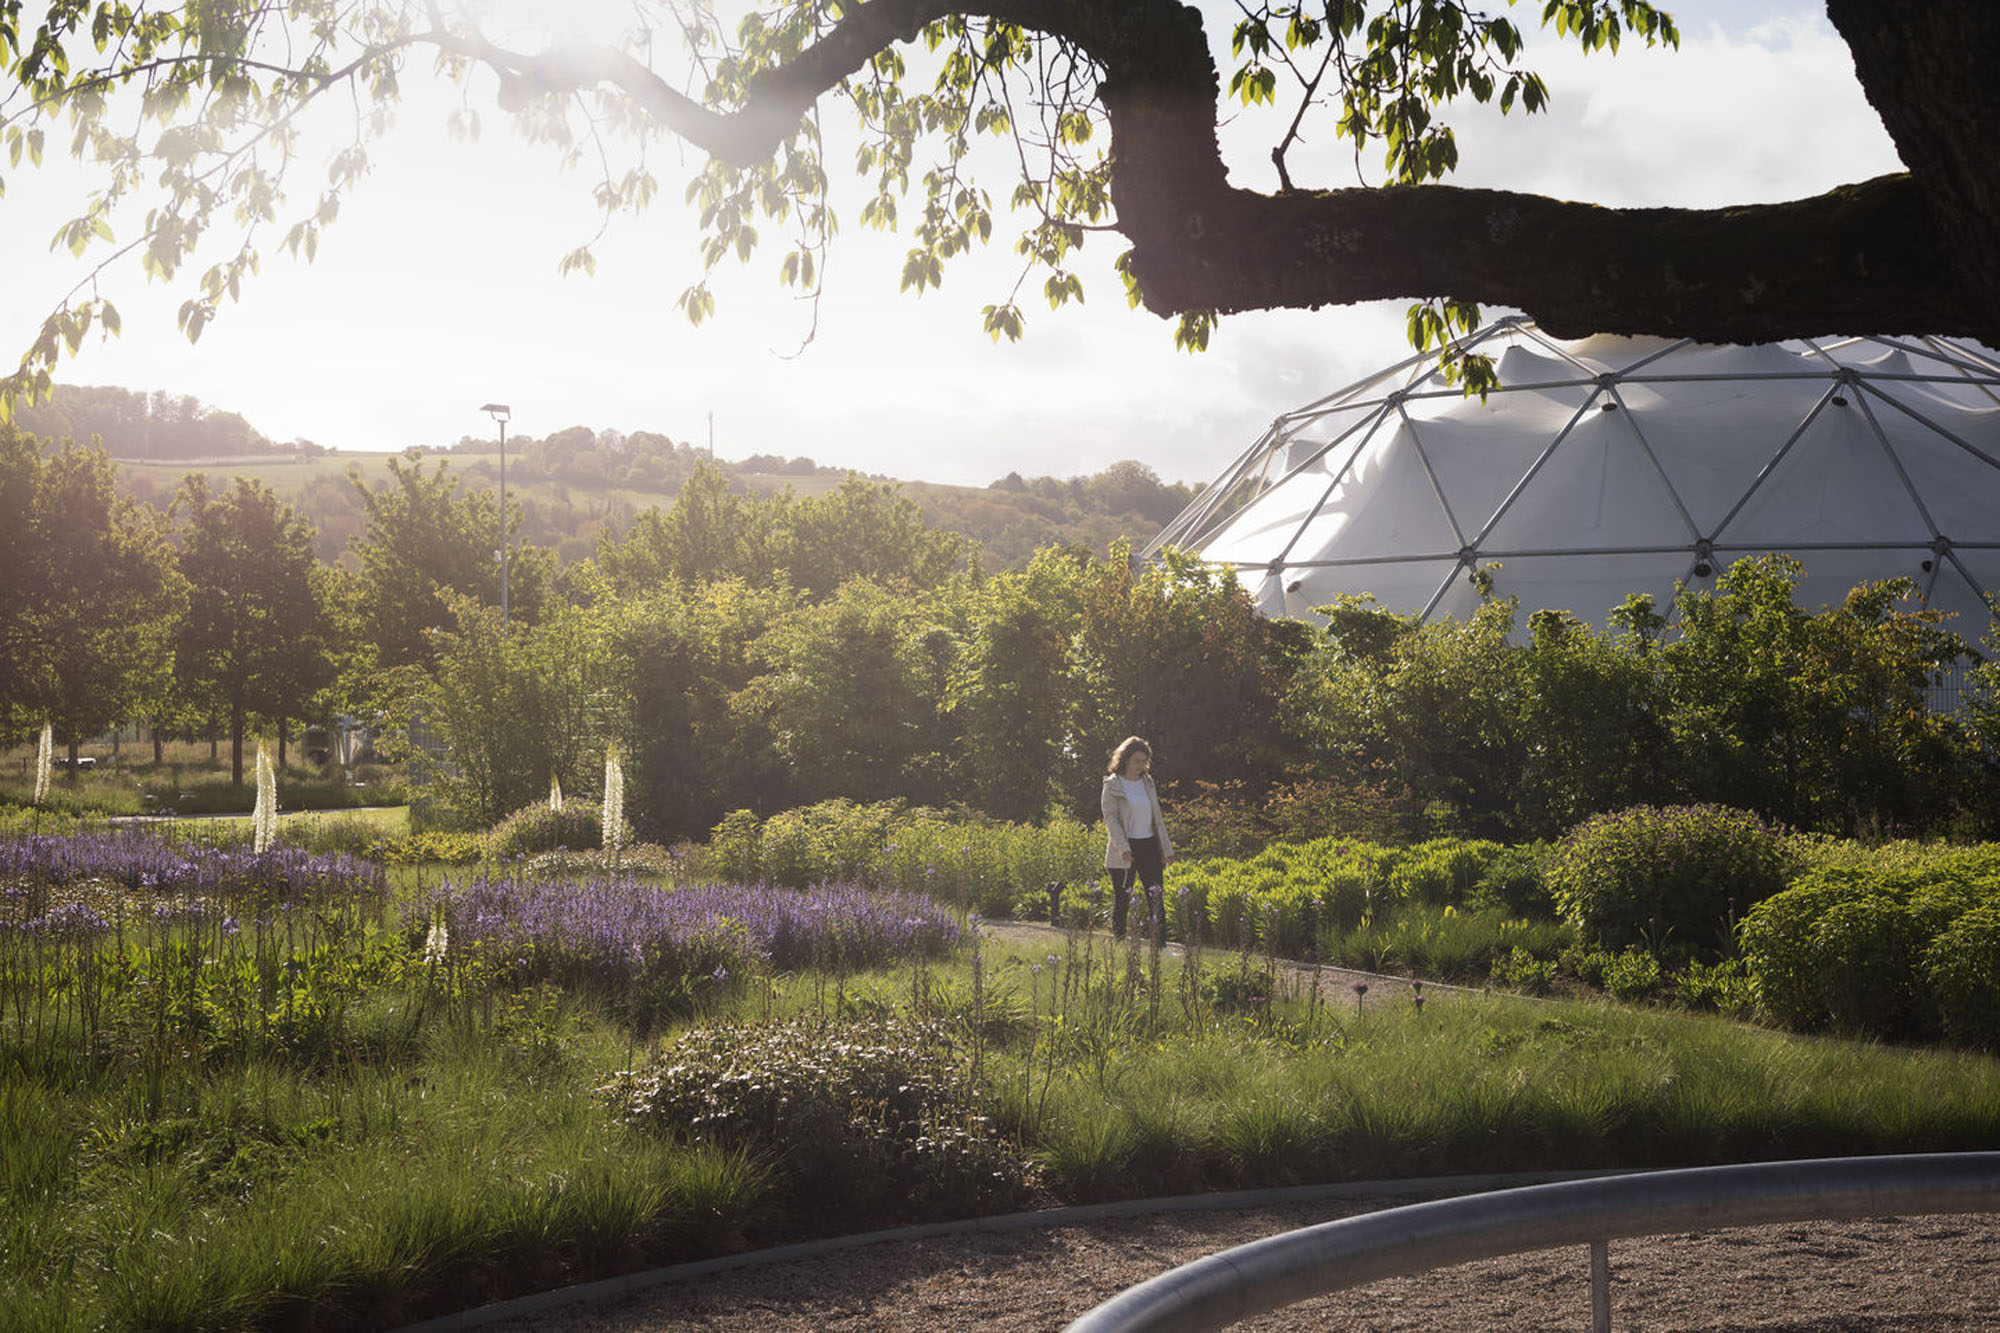 A geodesic dome and a person walking through the garden